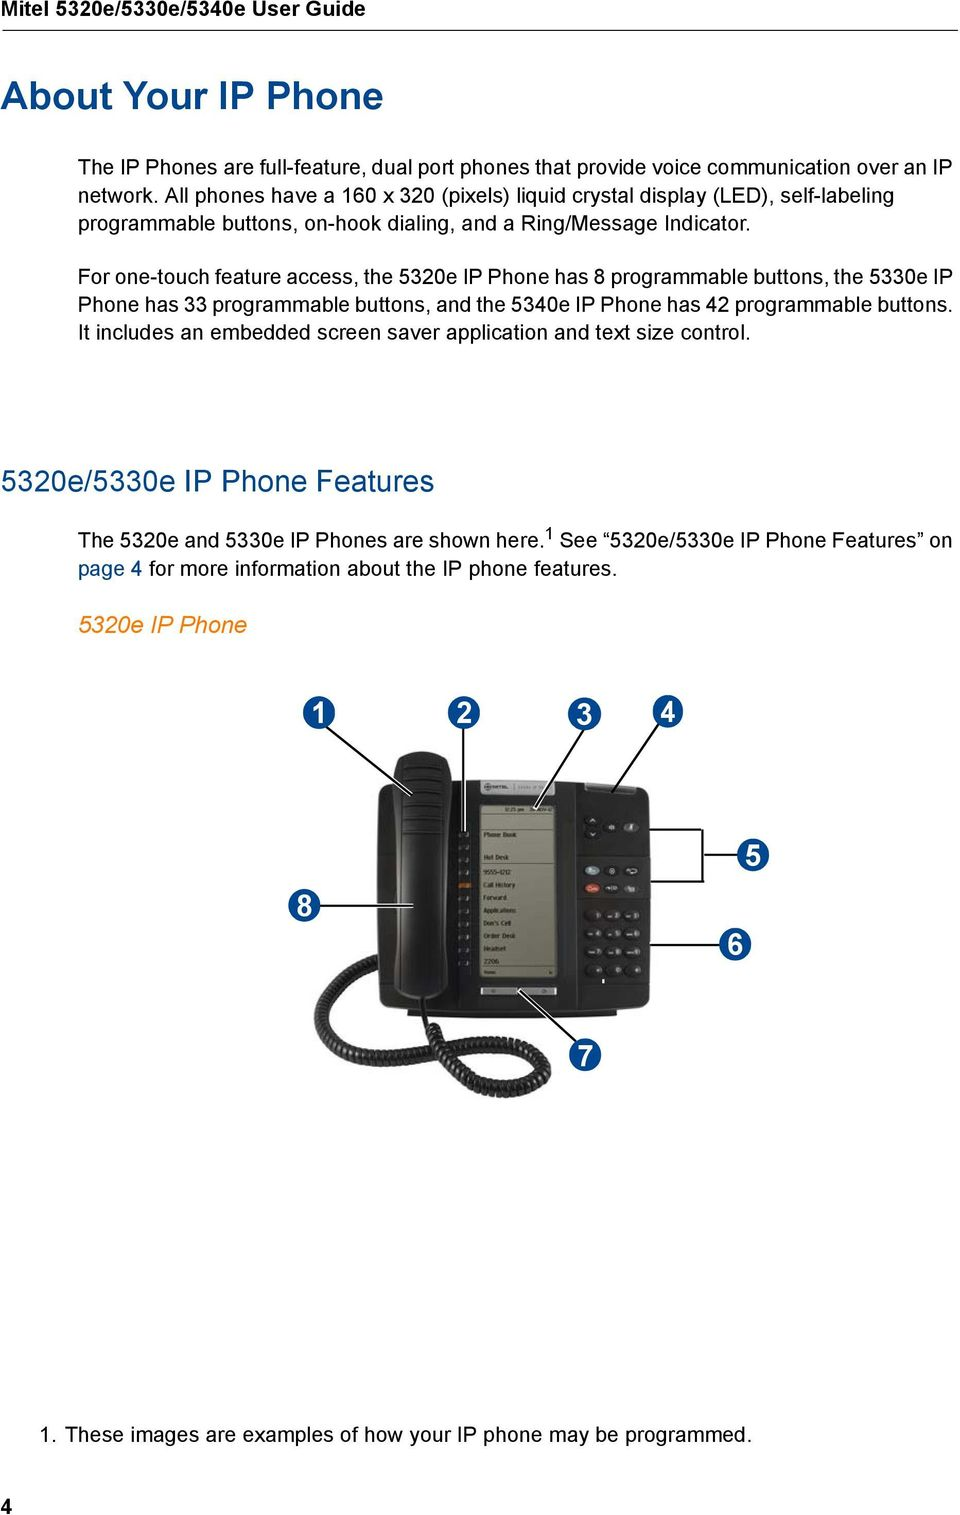 For one-touch feature access, the 5320e IP Phone has 8 programmable buttons, the 5330e IP Phone has 33 programmable buttons, and the 5340e IP Phone has 42 programmable buttons.